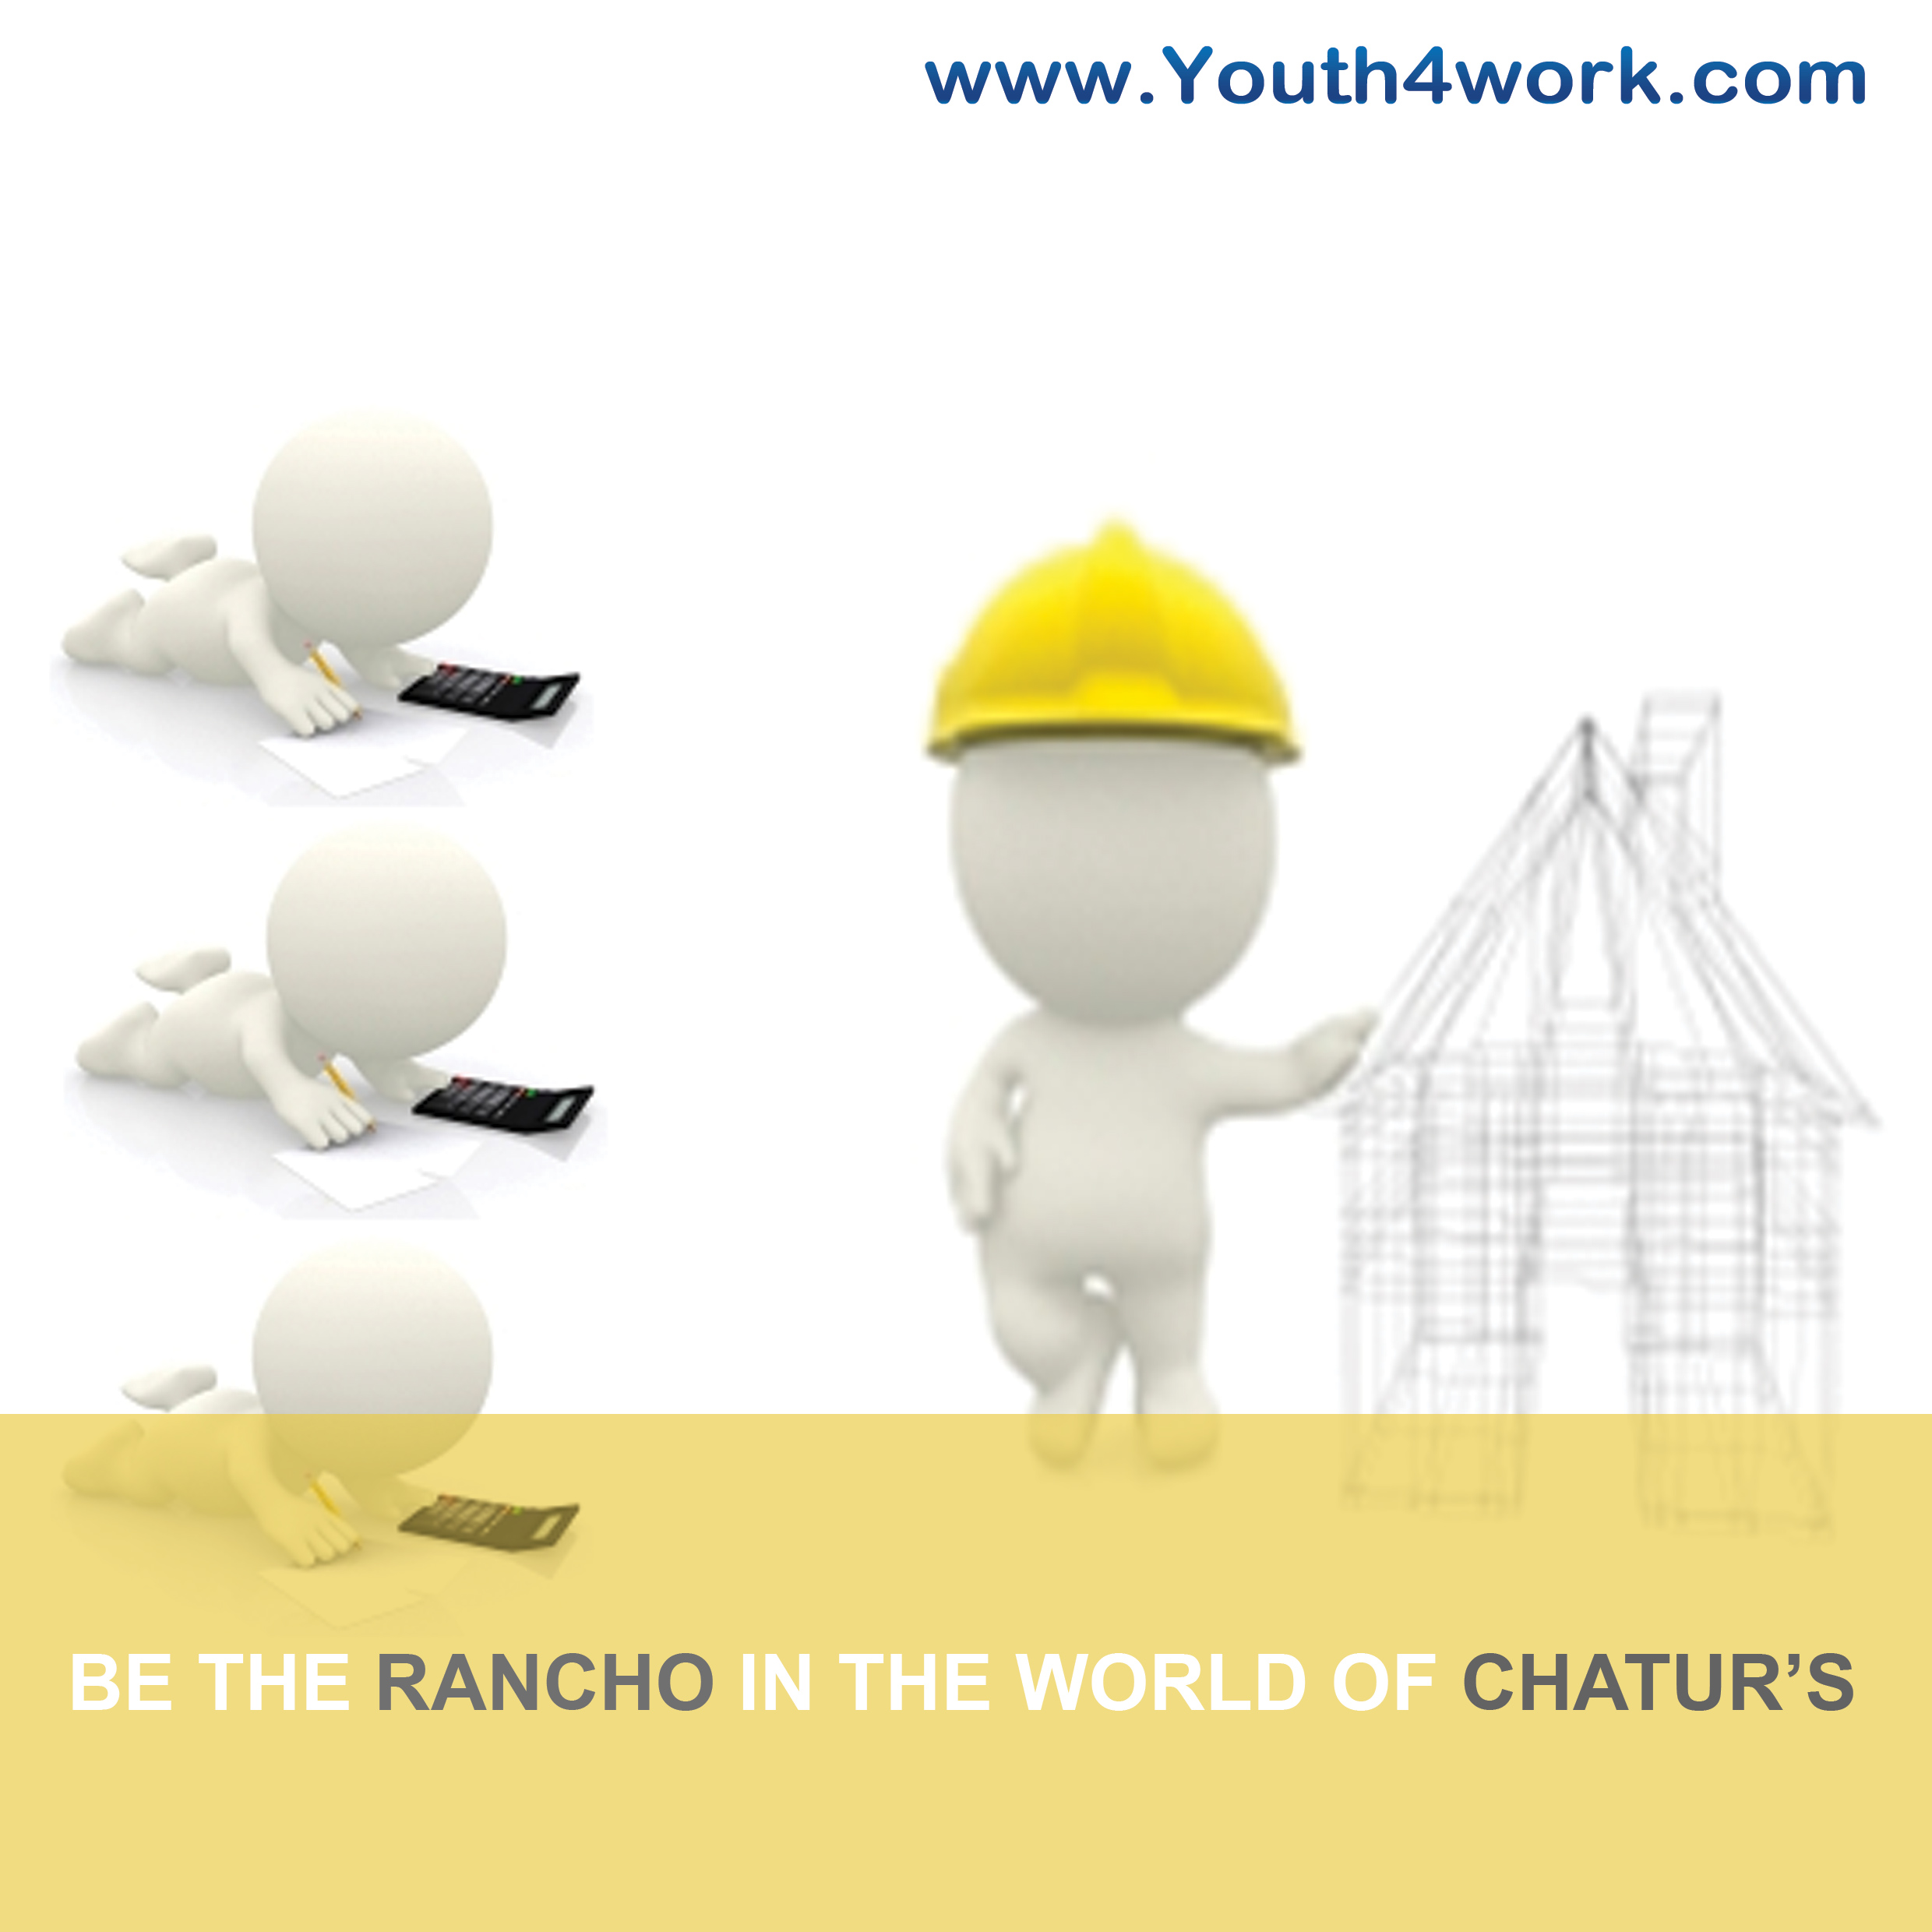 BE THE RANCHO IN THE WORLD OF CHATUR'S